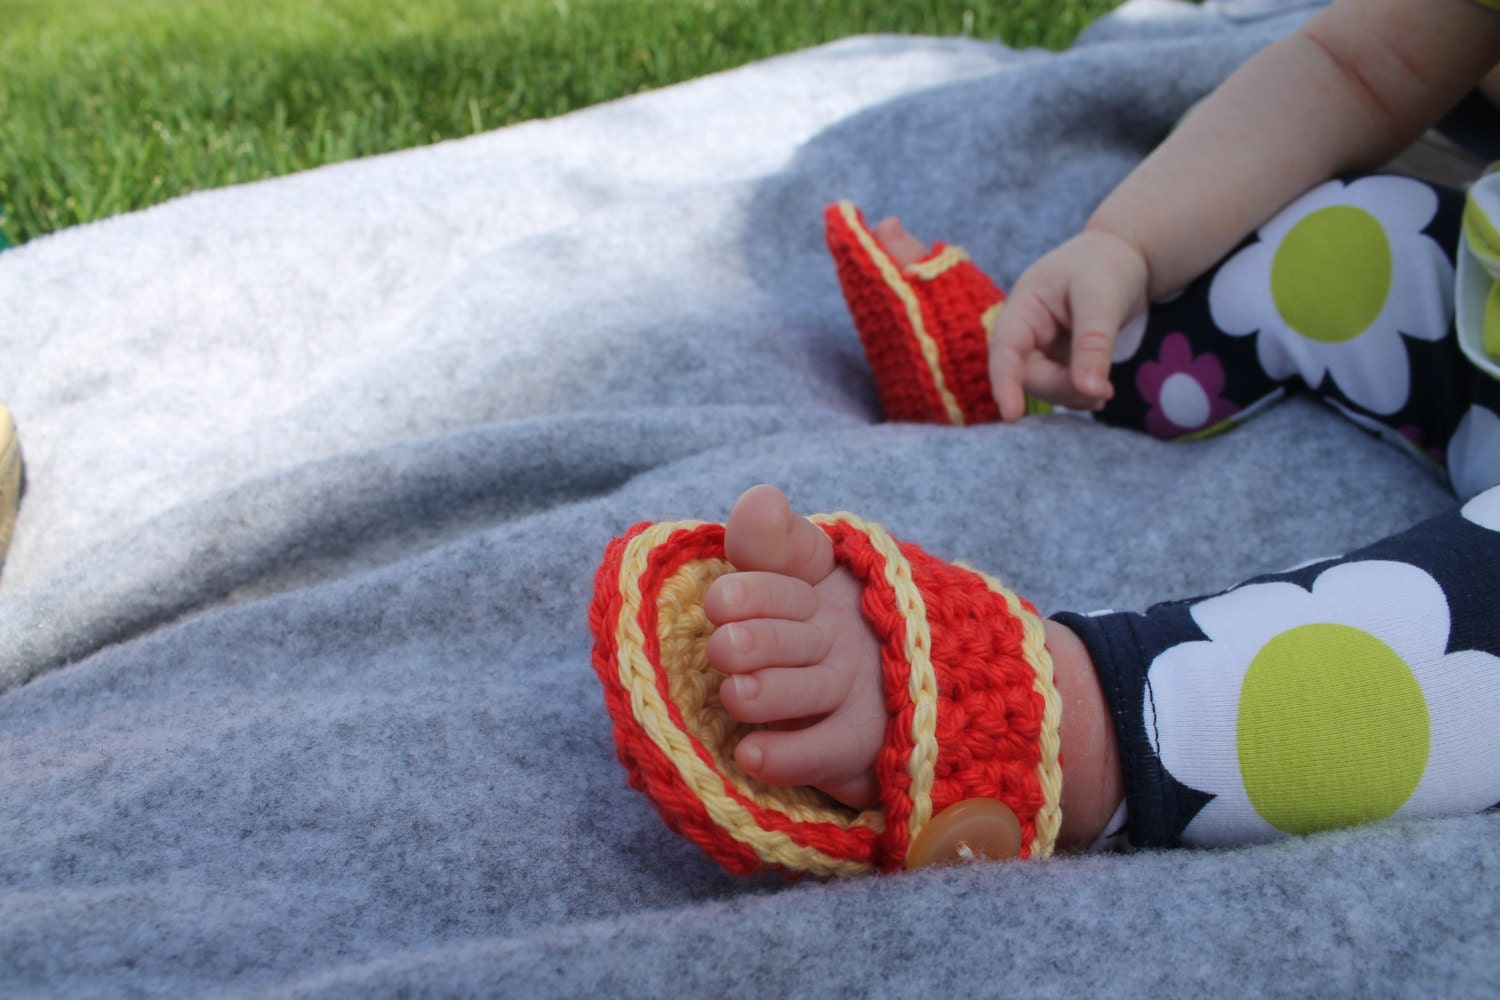 Baby Cotton Strap Sandals Summer Fashion Baby Photo Props Baby Shower Gift - sunshineknitandsew